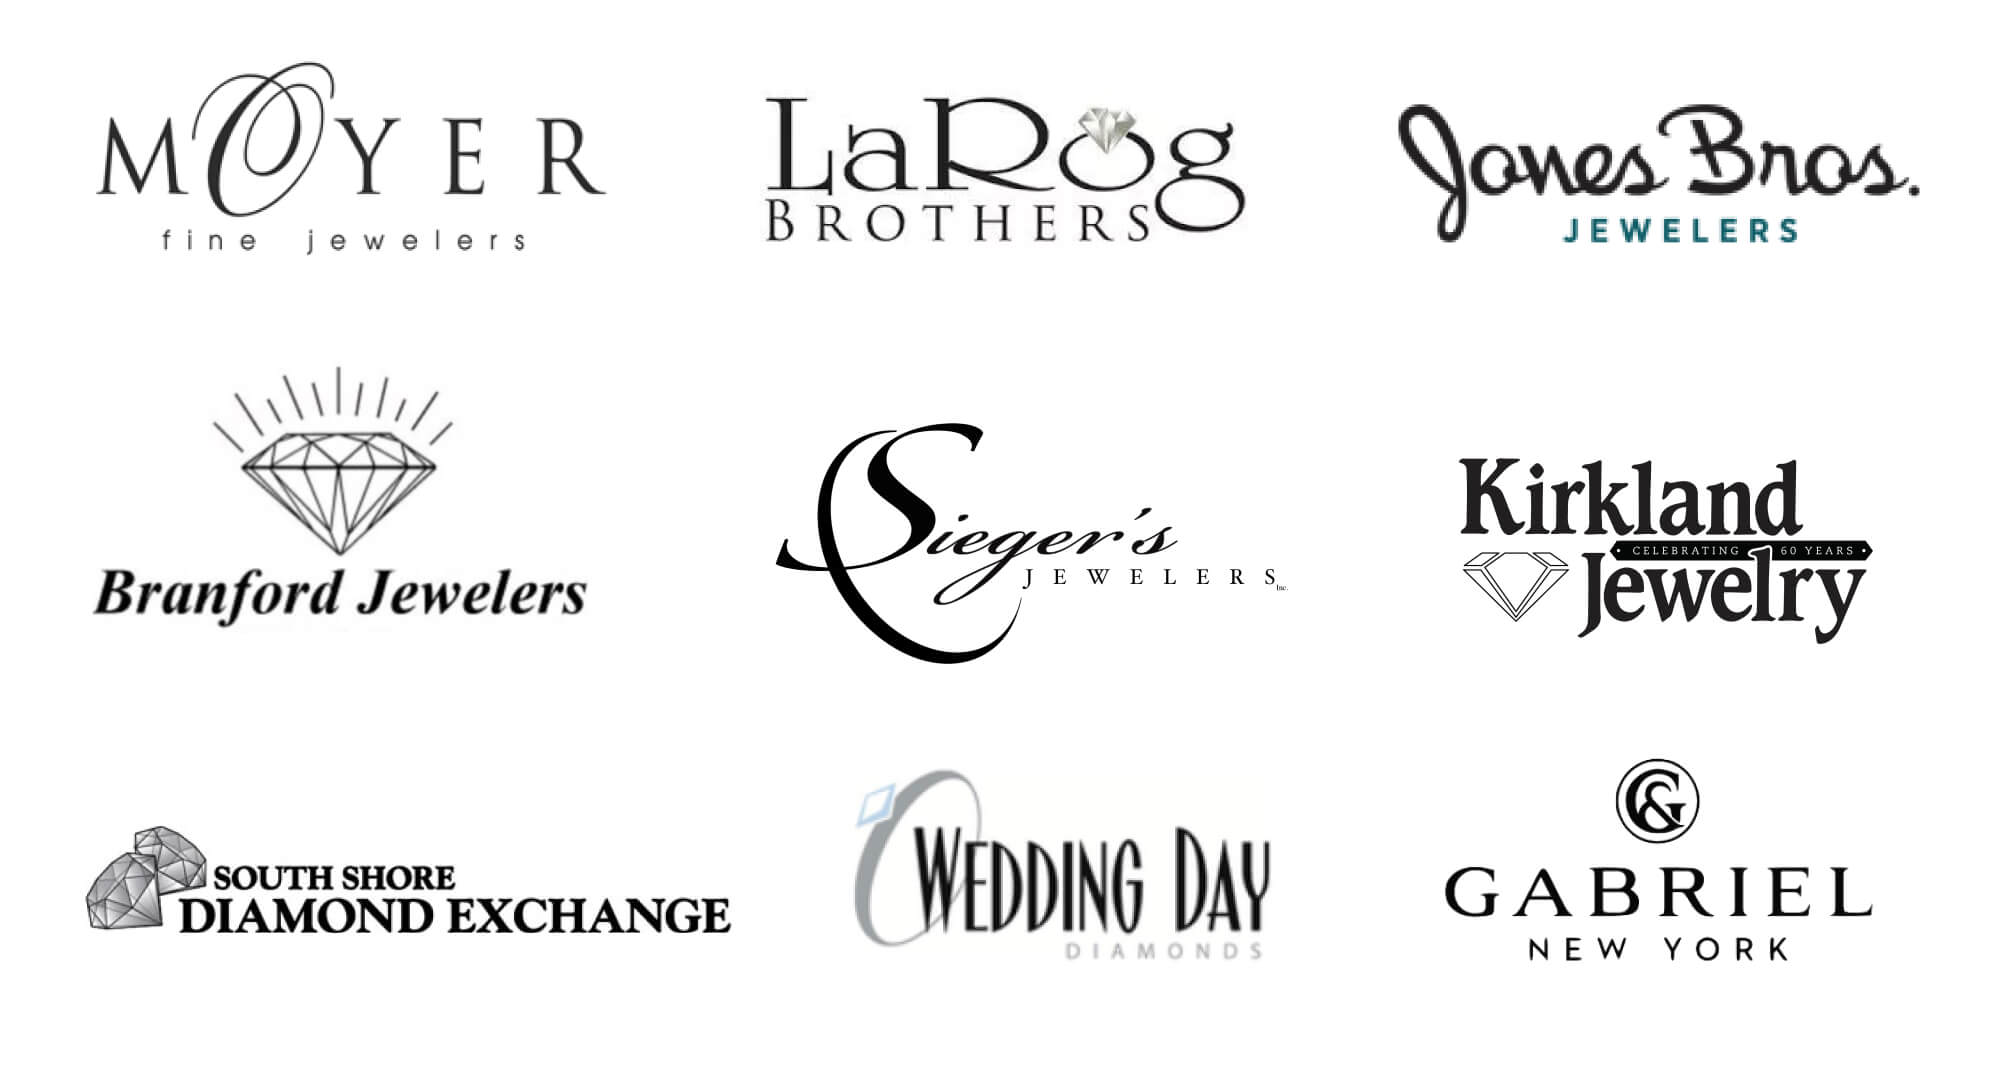 moyer fine jewelers, larog brothers, jones bros. jewelers, branford jewelers, sieger's jewelers, kirkland jewelry, south shore diamond exchange, wedding day diamonds, gabriel new york